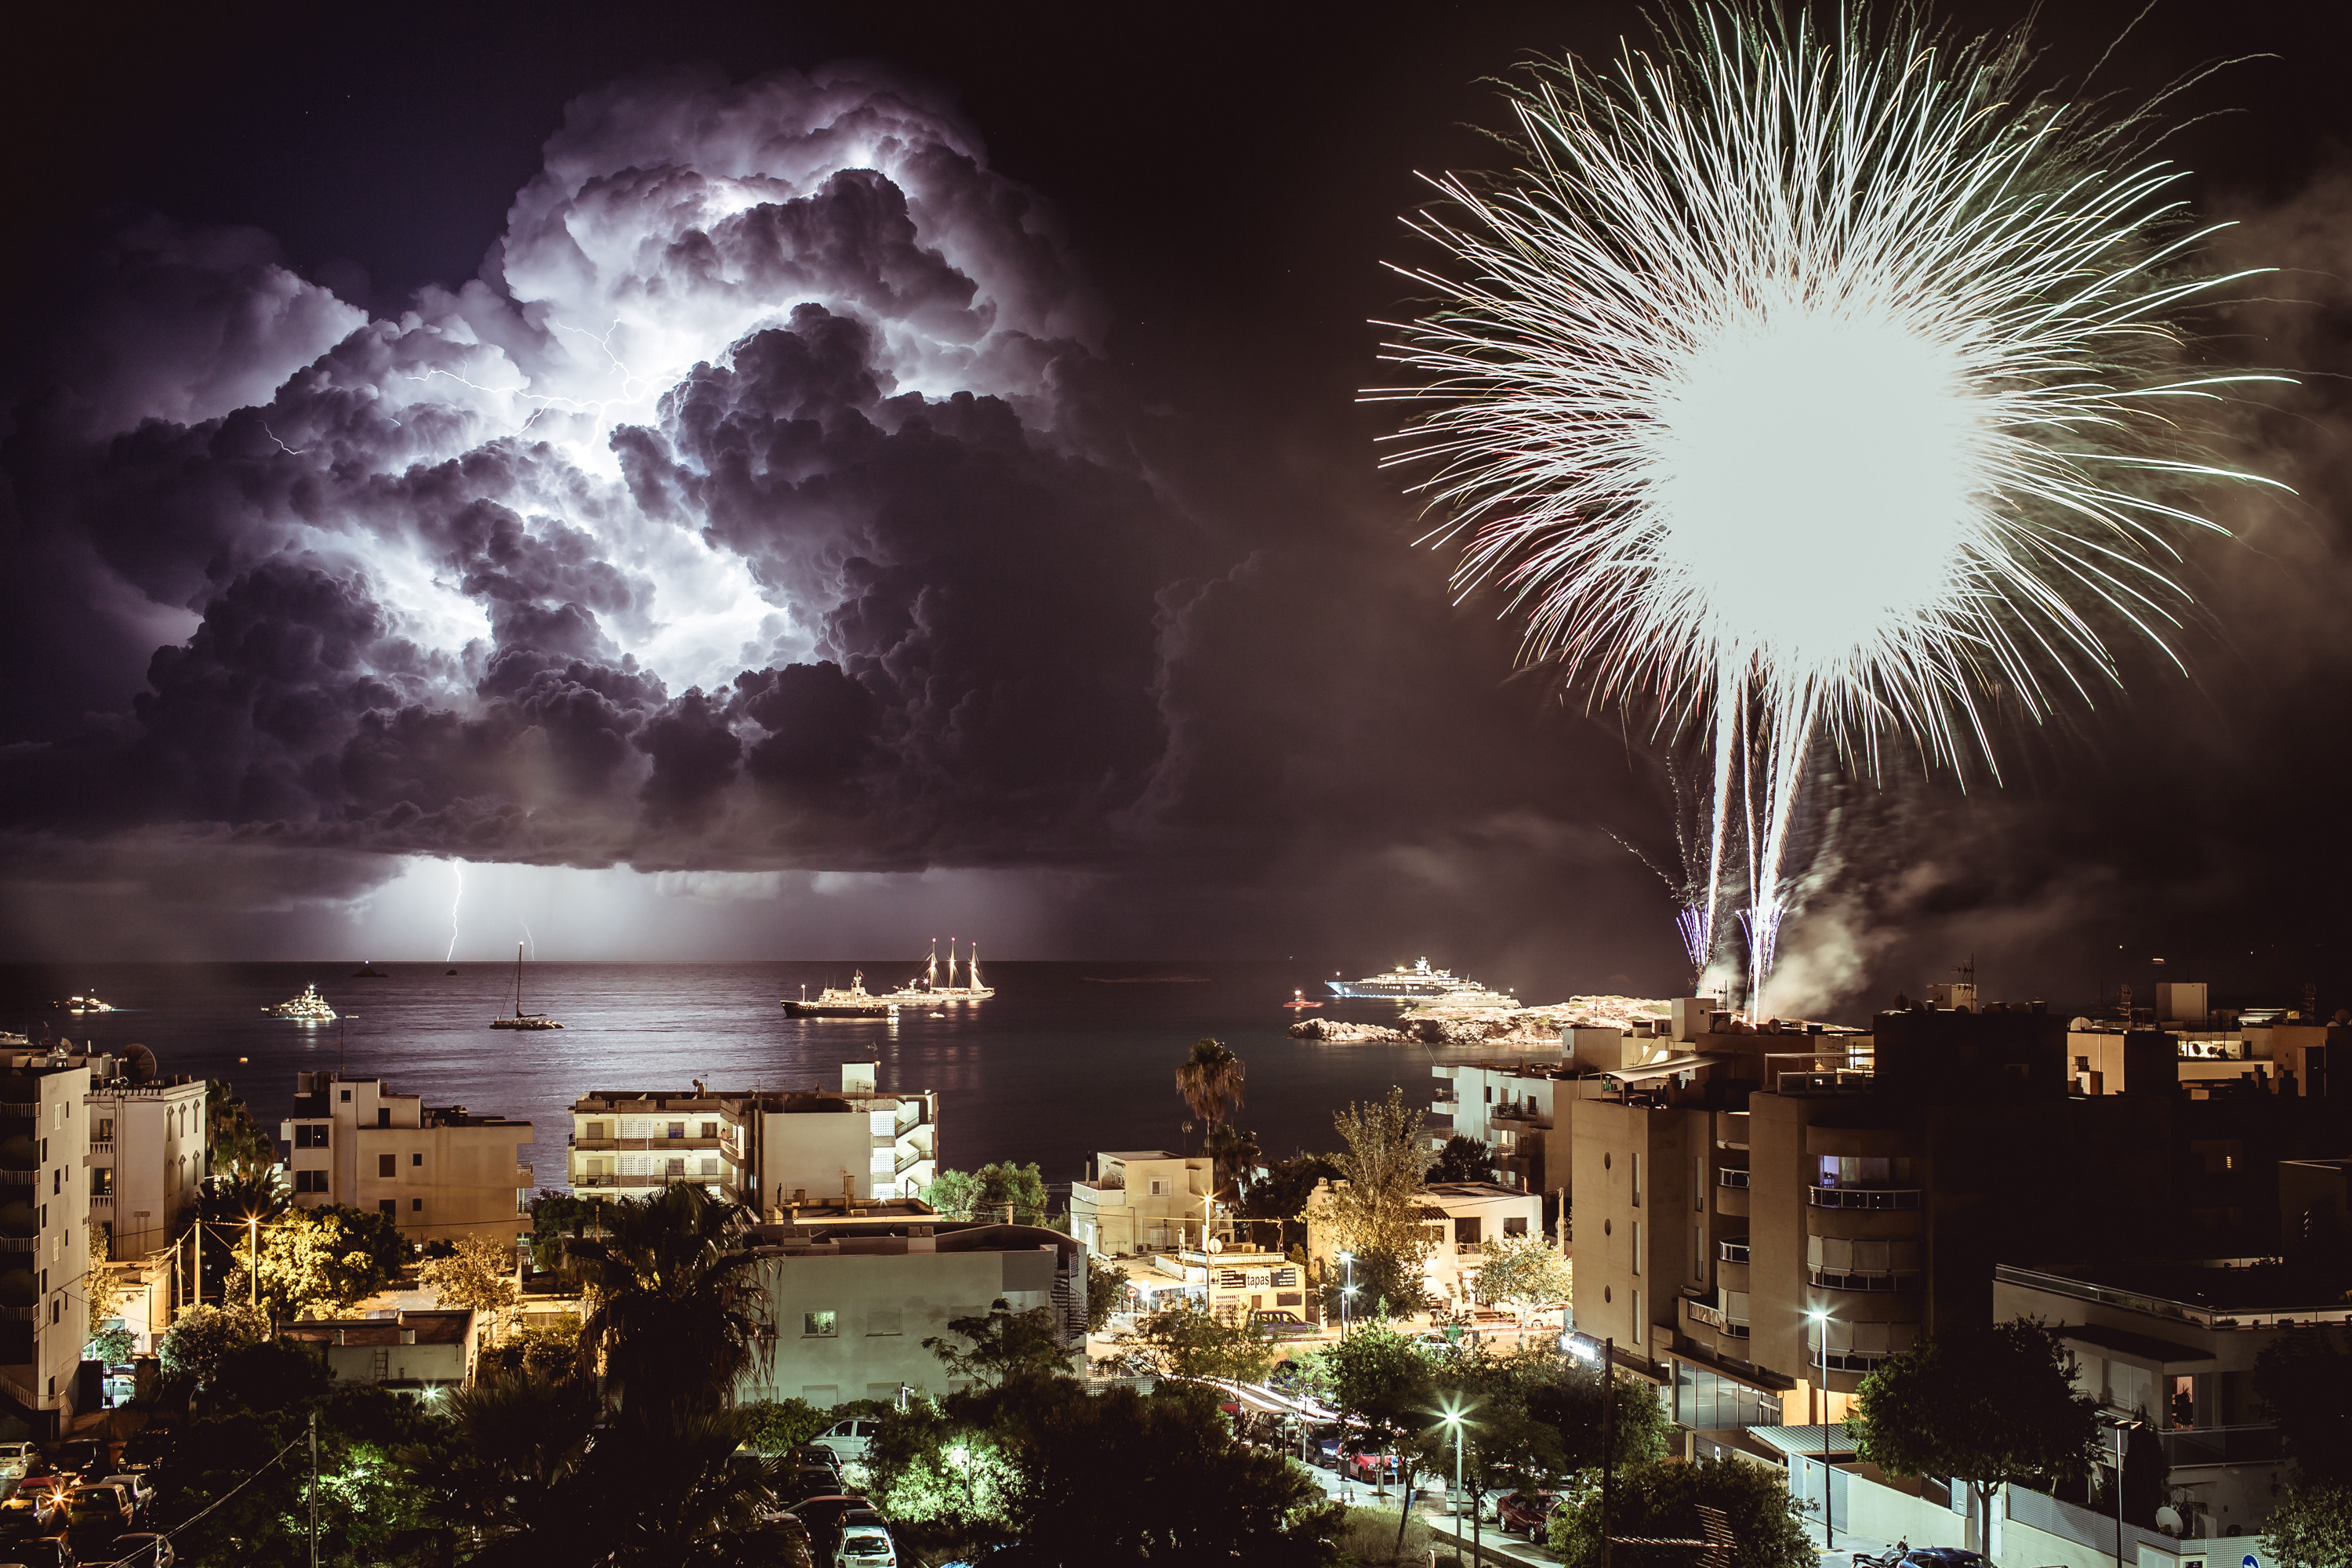 Photographer captures awesome 'Man Vs Nature' moment as lightning strikes during storm in Ibiza